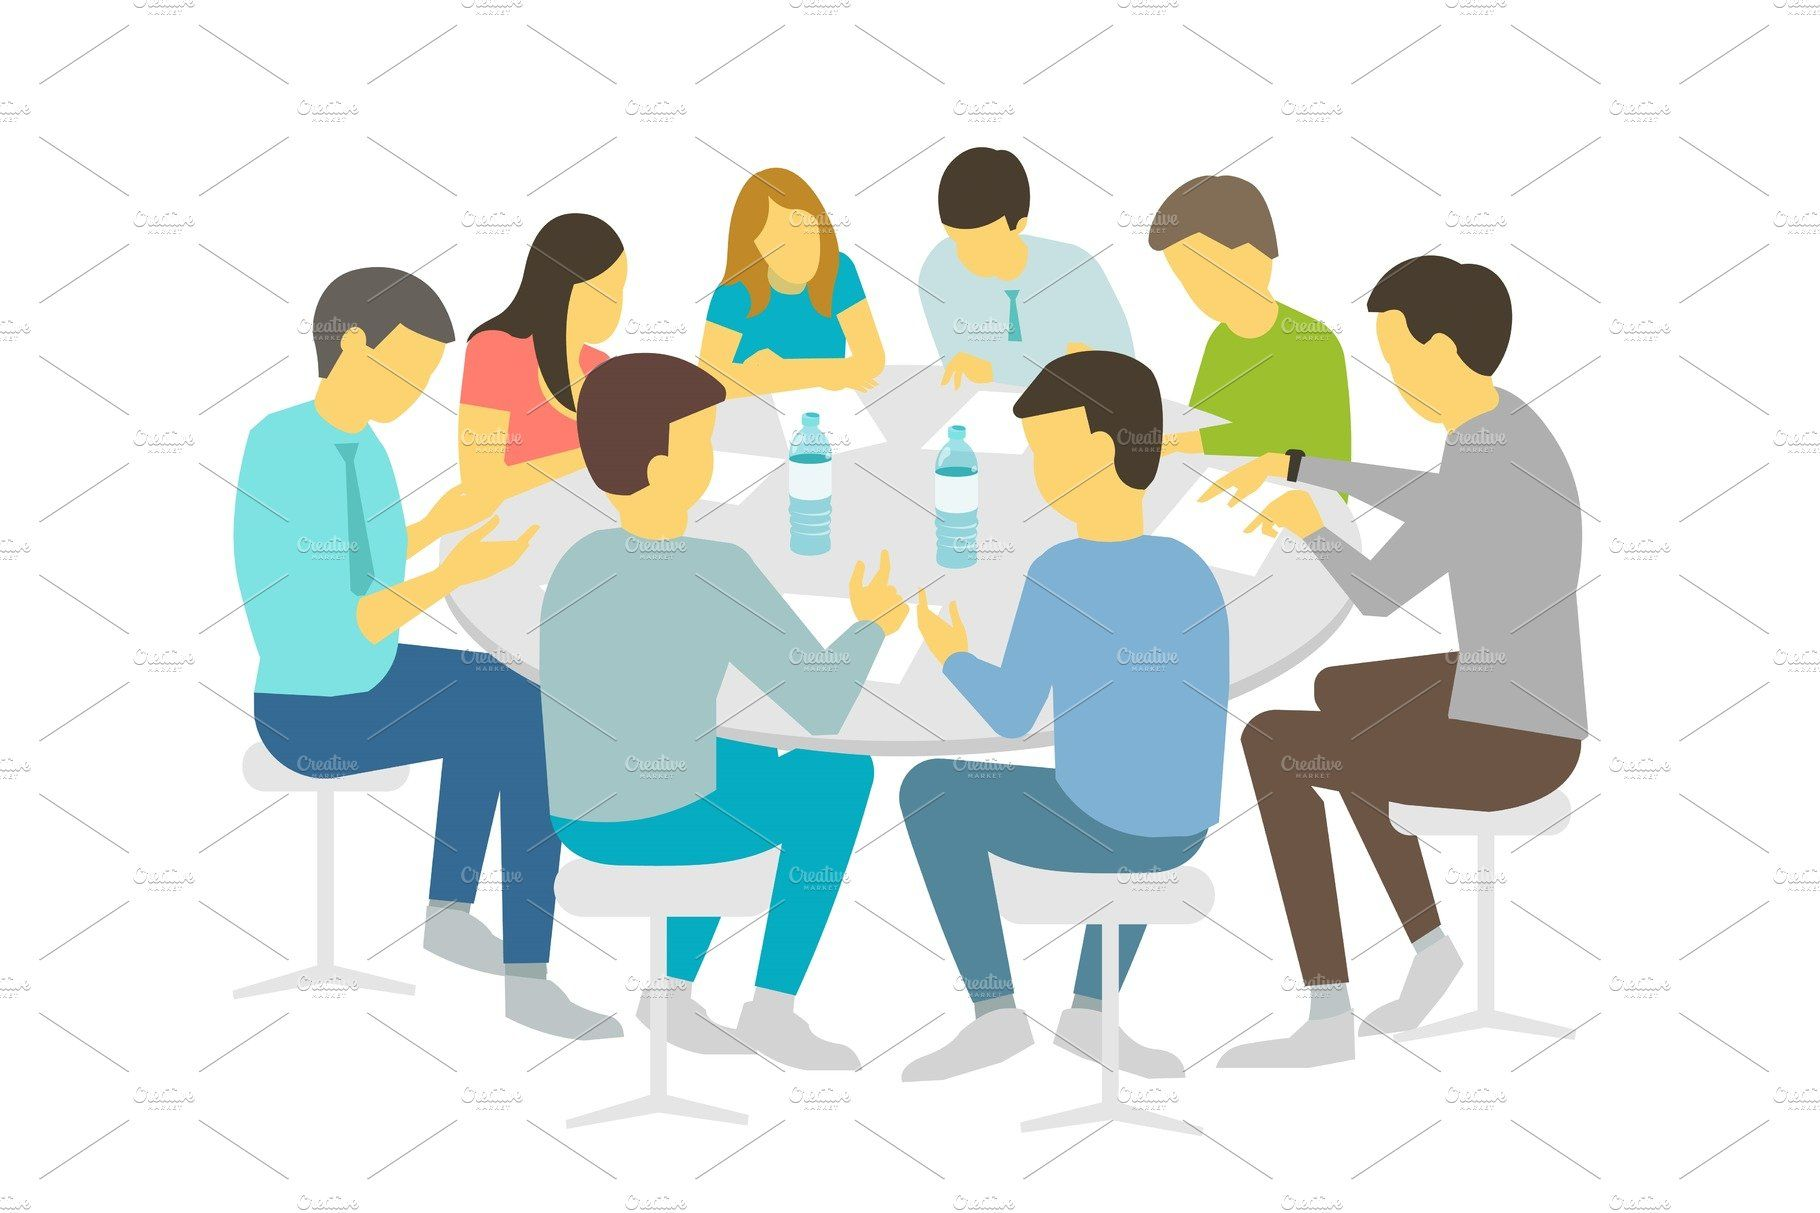 Round Table Talks Brainstorm Team Business People Meeting Conference Eight People White Background Stock Illustration Vector Refresher Courses In 2021 Illustration Unity In Art Stock Illustration